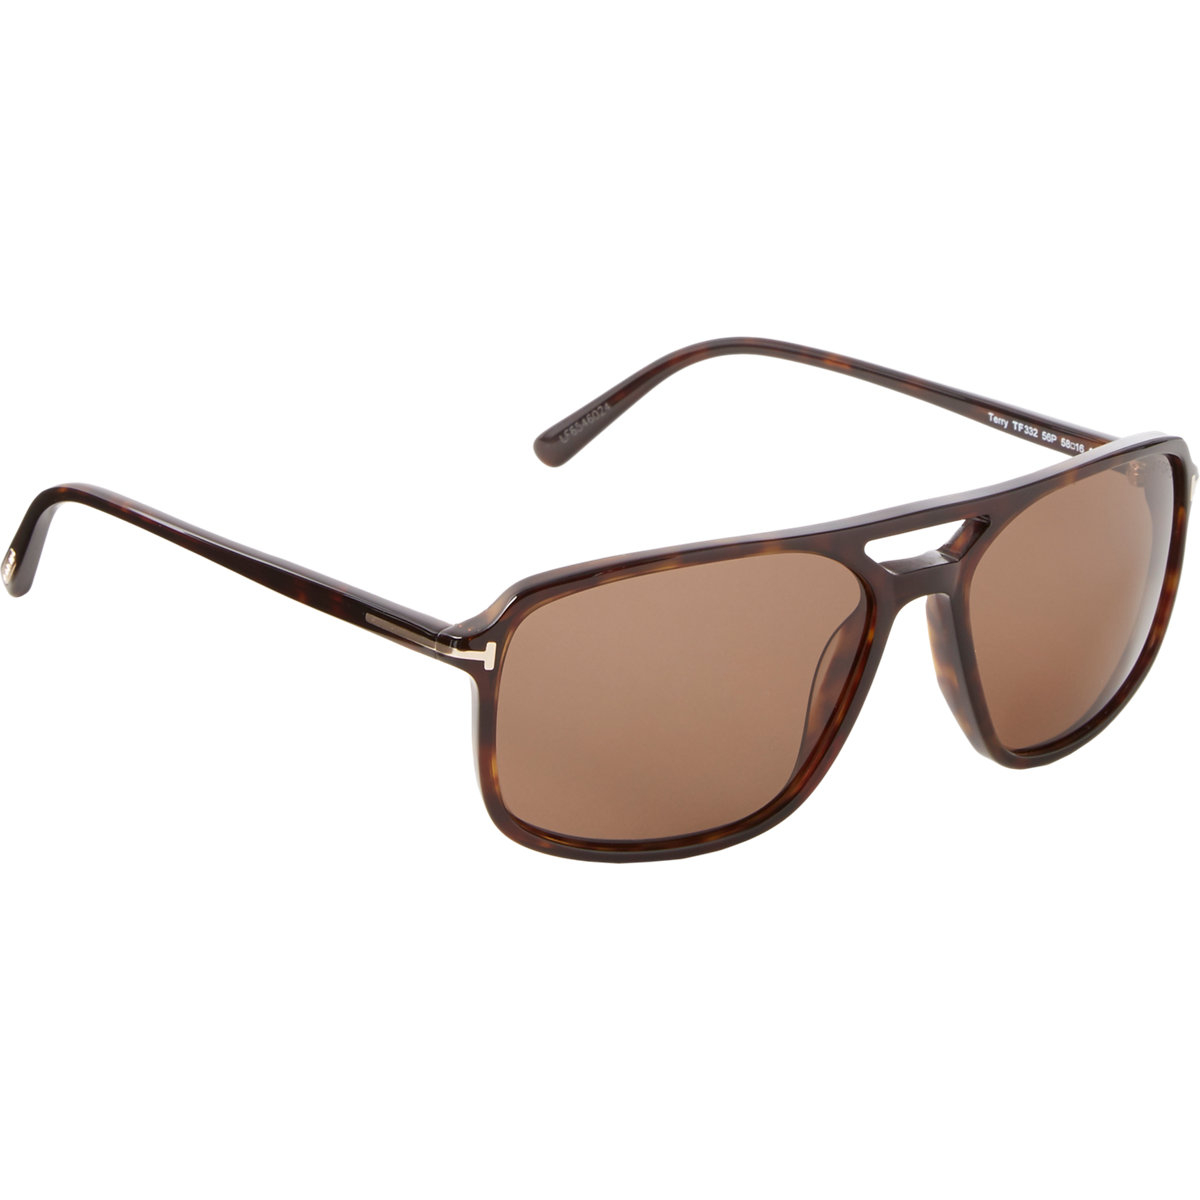 tom ford terry sunglasses in brown for men lyst. Cars Review. Best American Auto & Cars Review